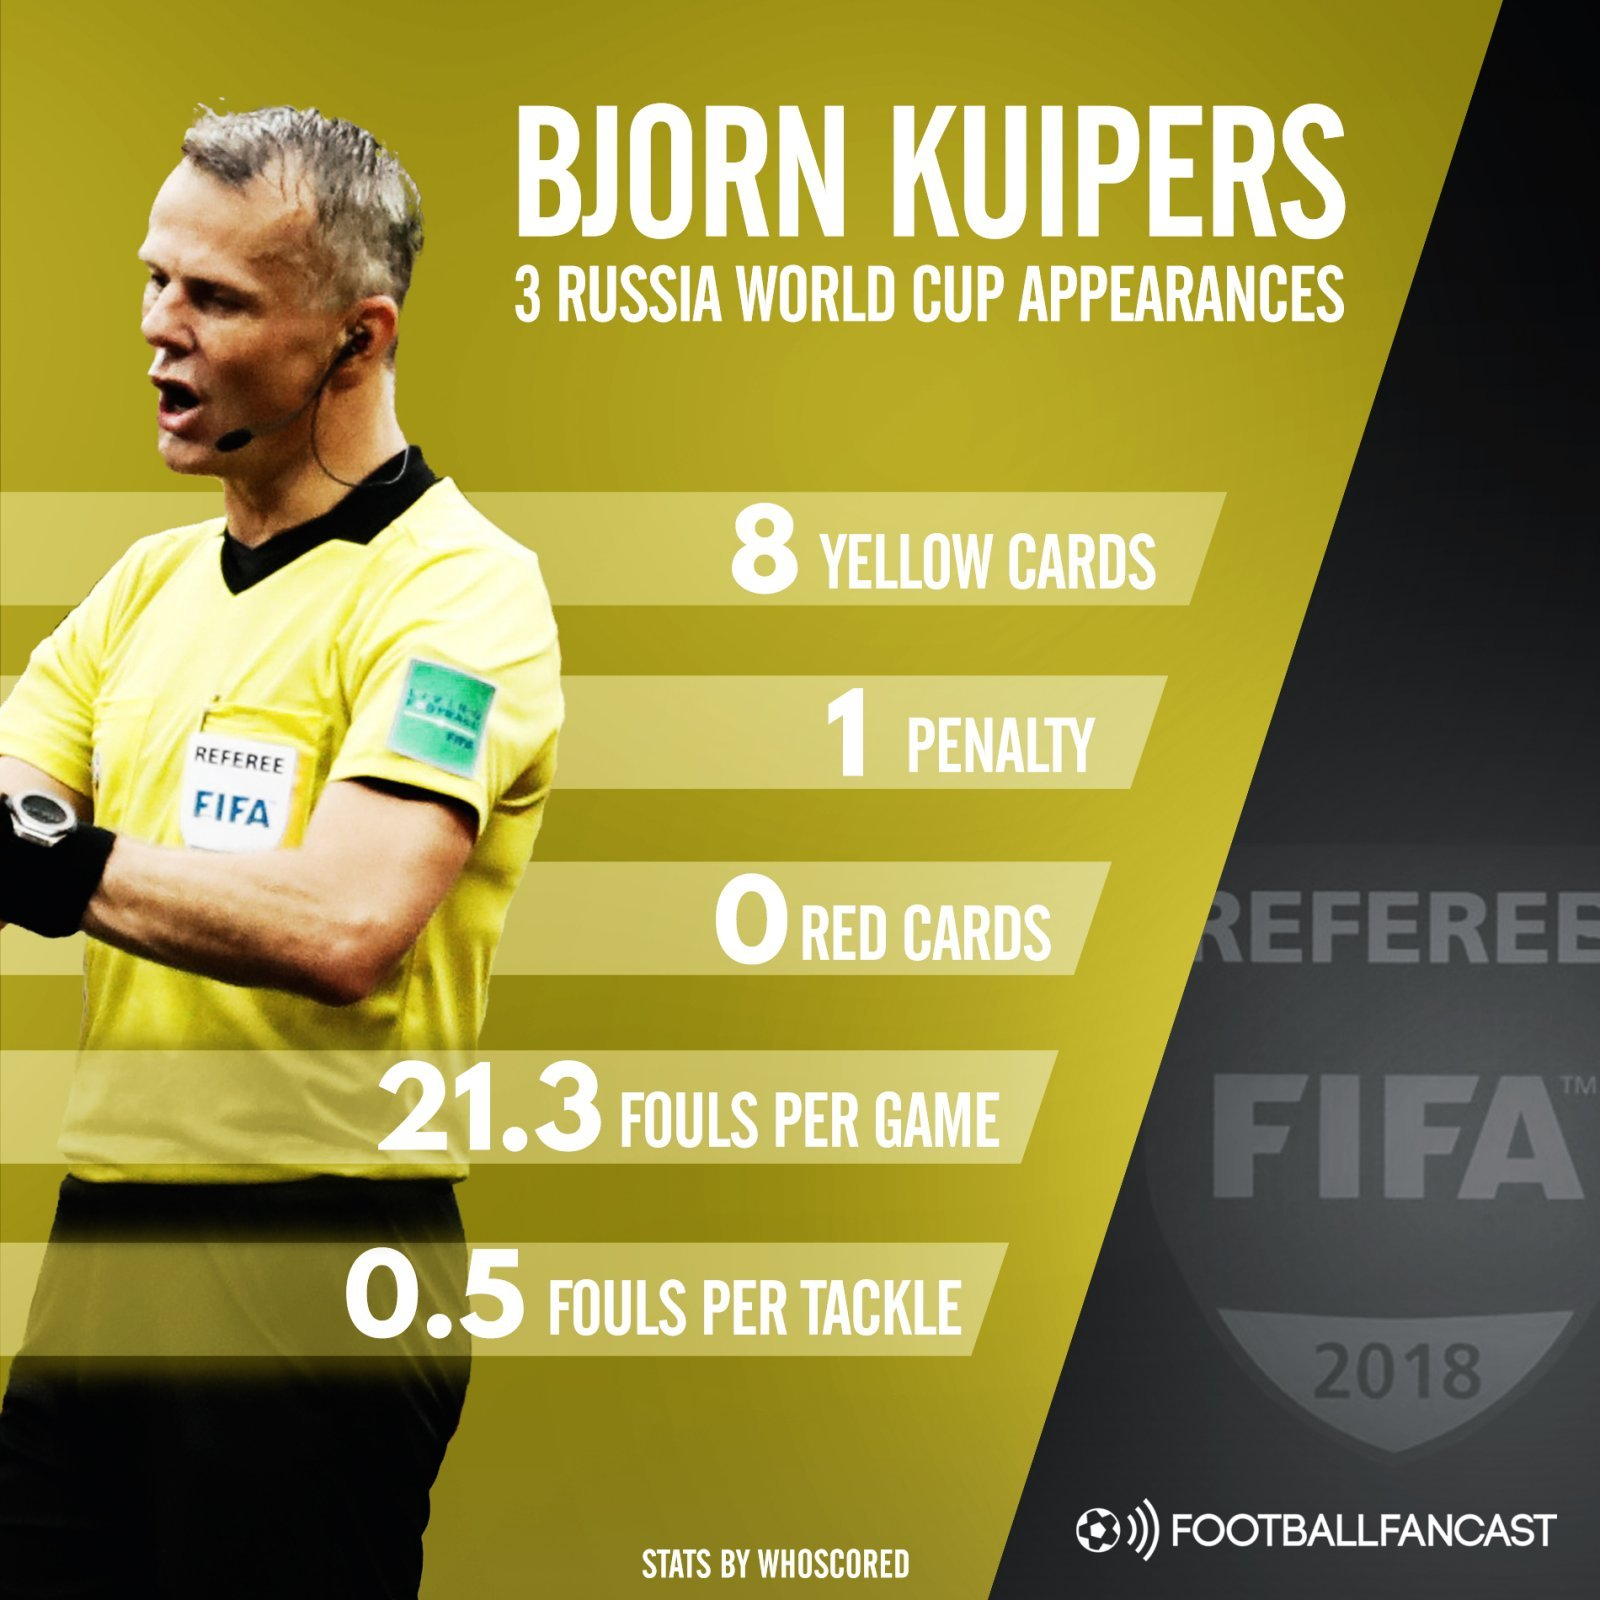 Bjorn Kuipers' stats from the 2018 World Cup